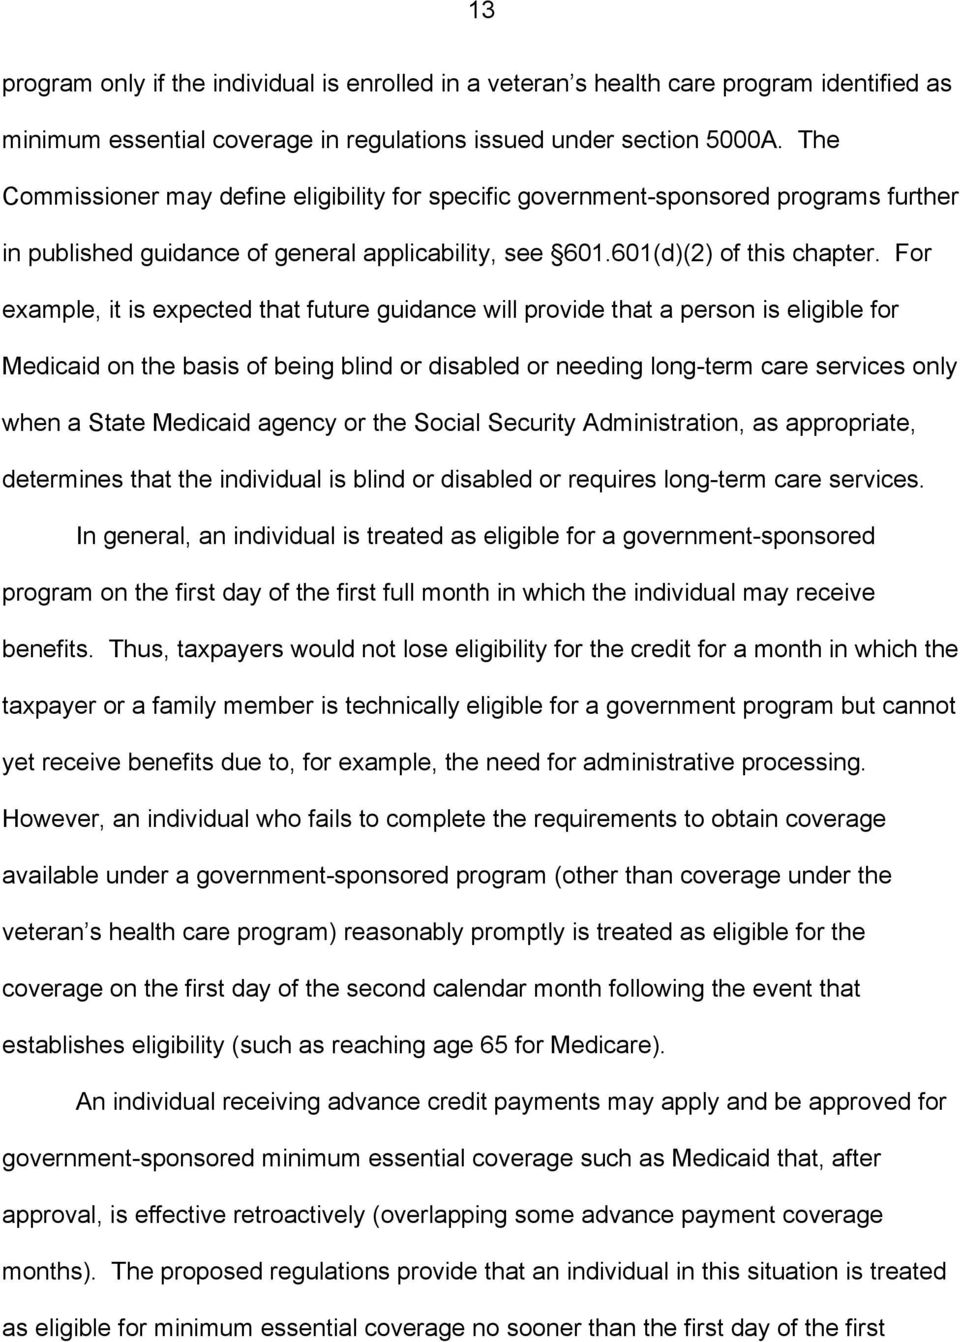 For example, it is expected that future guidance will provide that a person is eligible for Medicaid on the basis of being blind or disabled or needing long-term care services only when a State